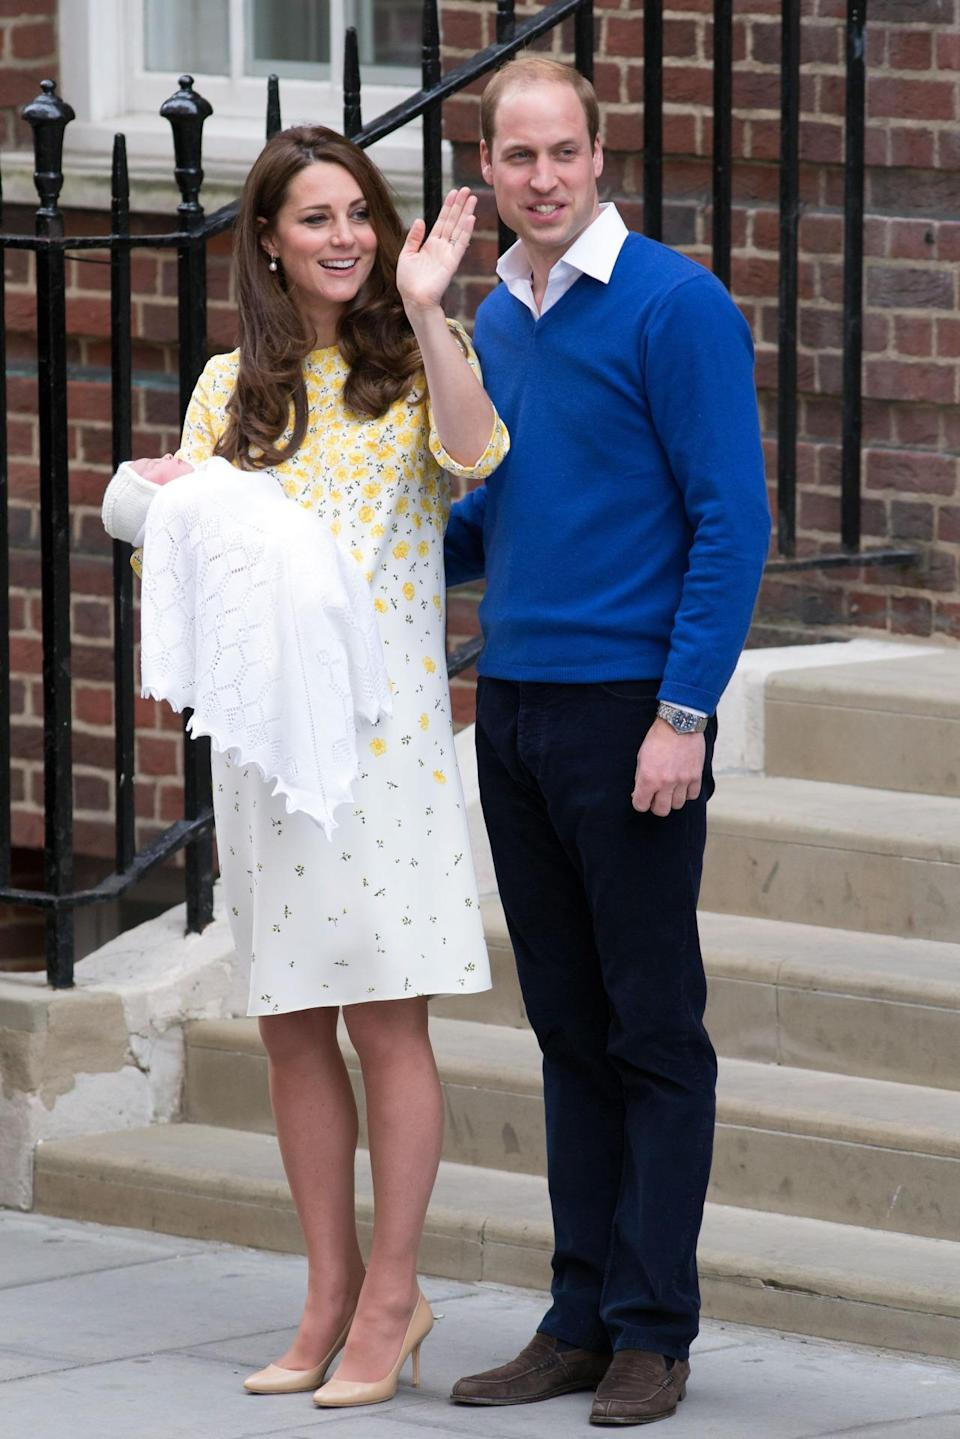 <p>Welcoming Princess Charlotte to the public, Kate chose a bespoke Jenny Packham dress complete with a sweet buttercup print. She paired the look with nude Jimmy Choo pumps. </p><p><i>[Photo: PA]</i></p>